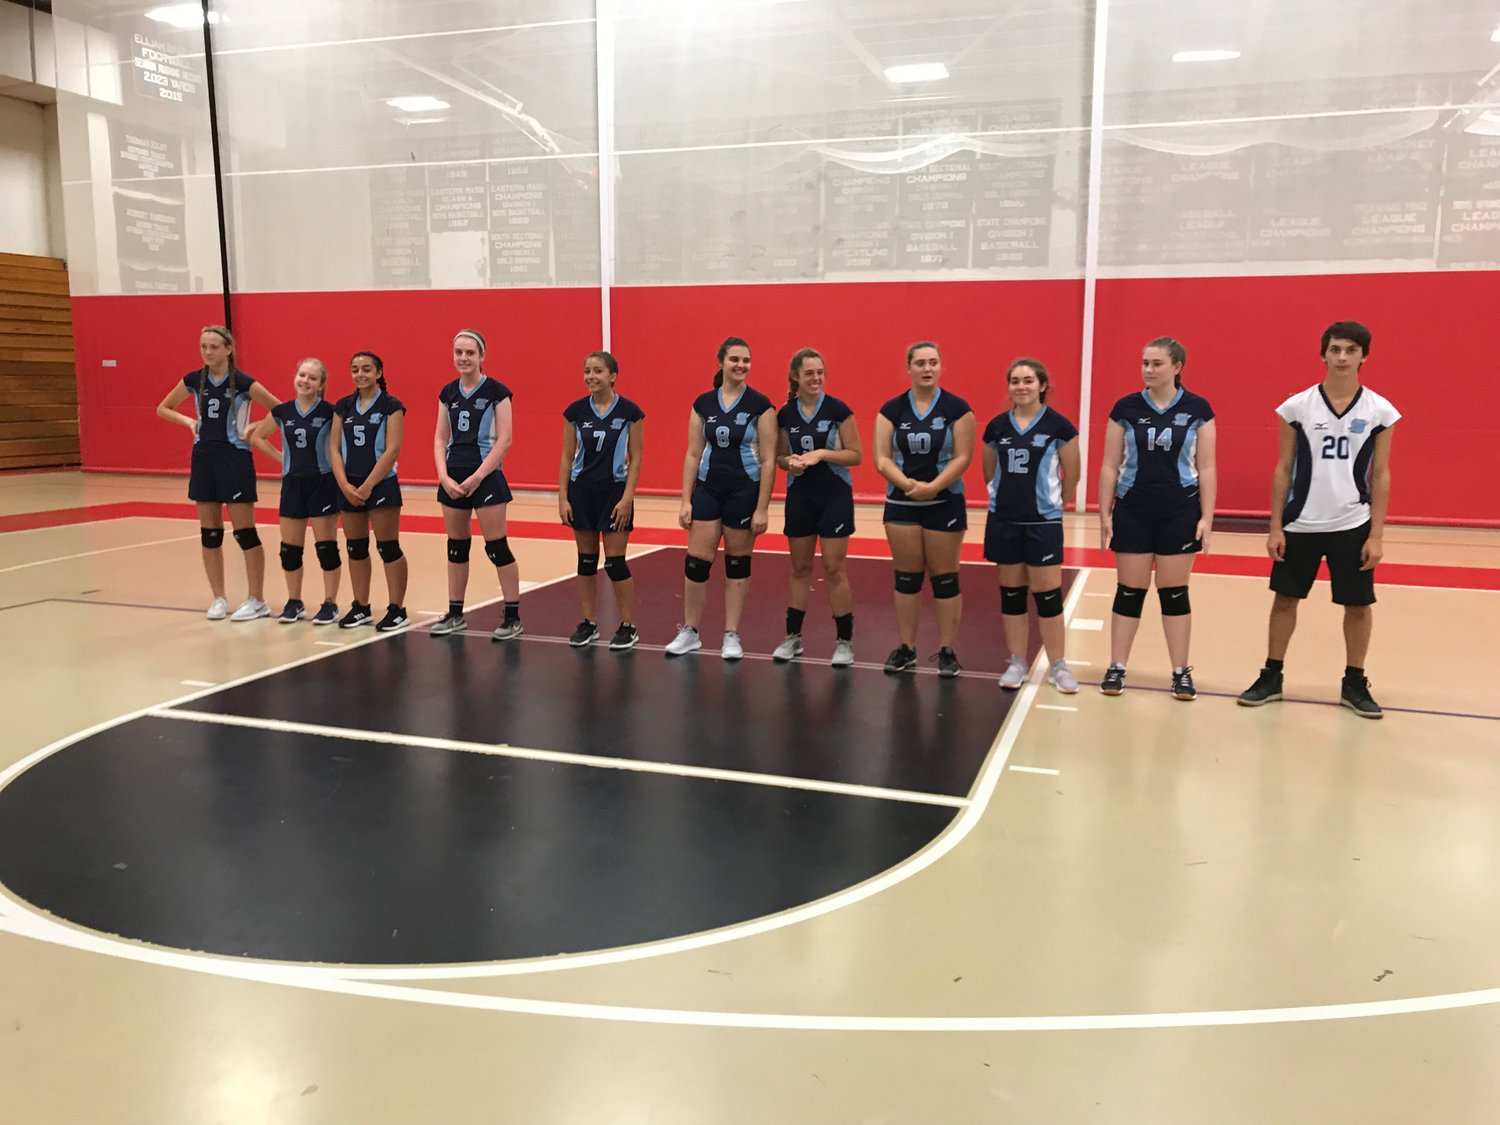 The Seekonk High School volleyball team lines up before Tuesday's season-opener against Durfee.